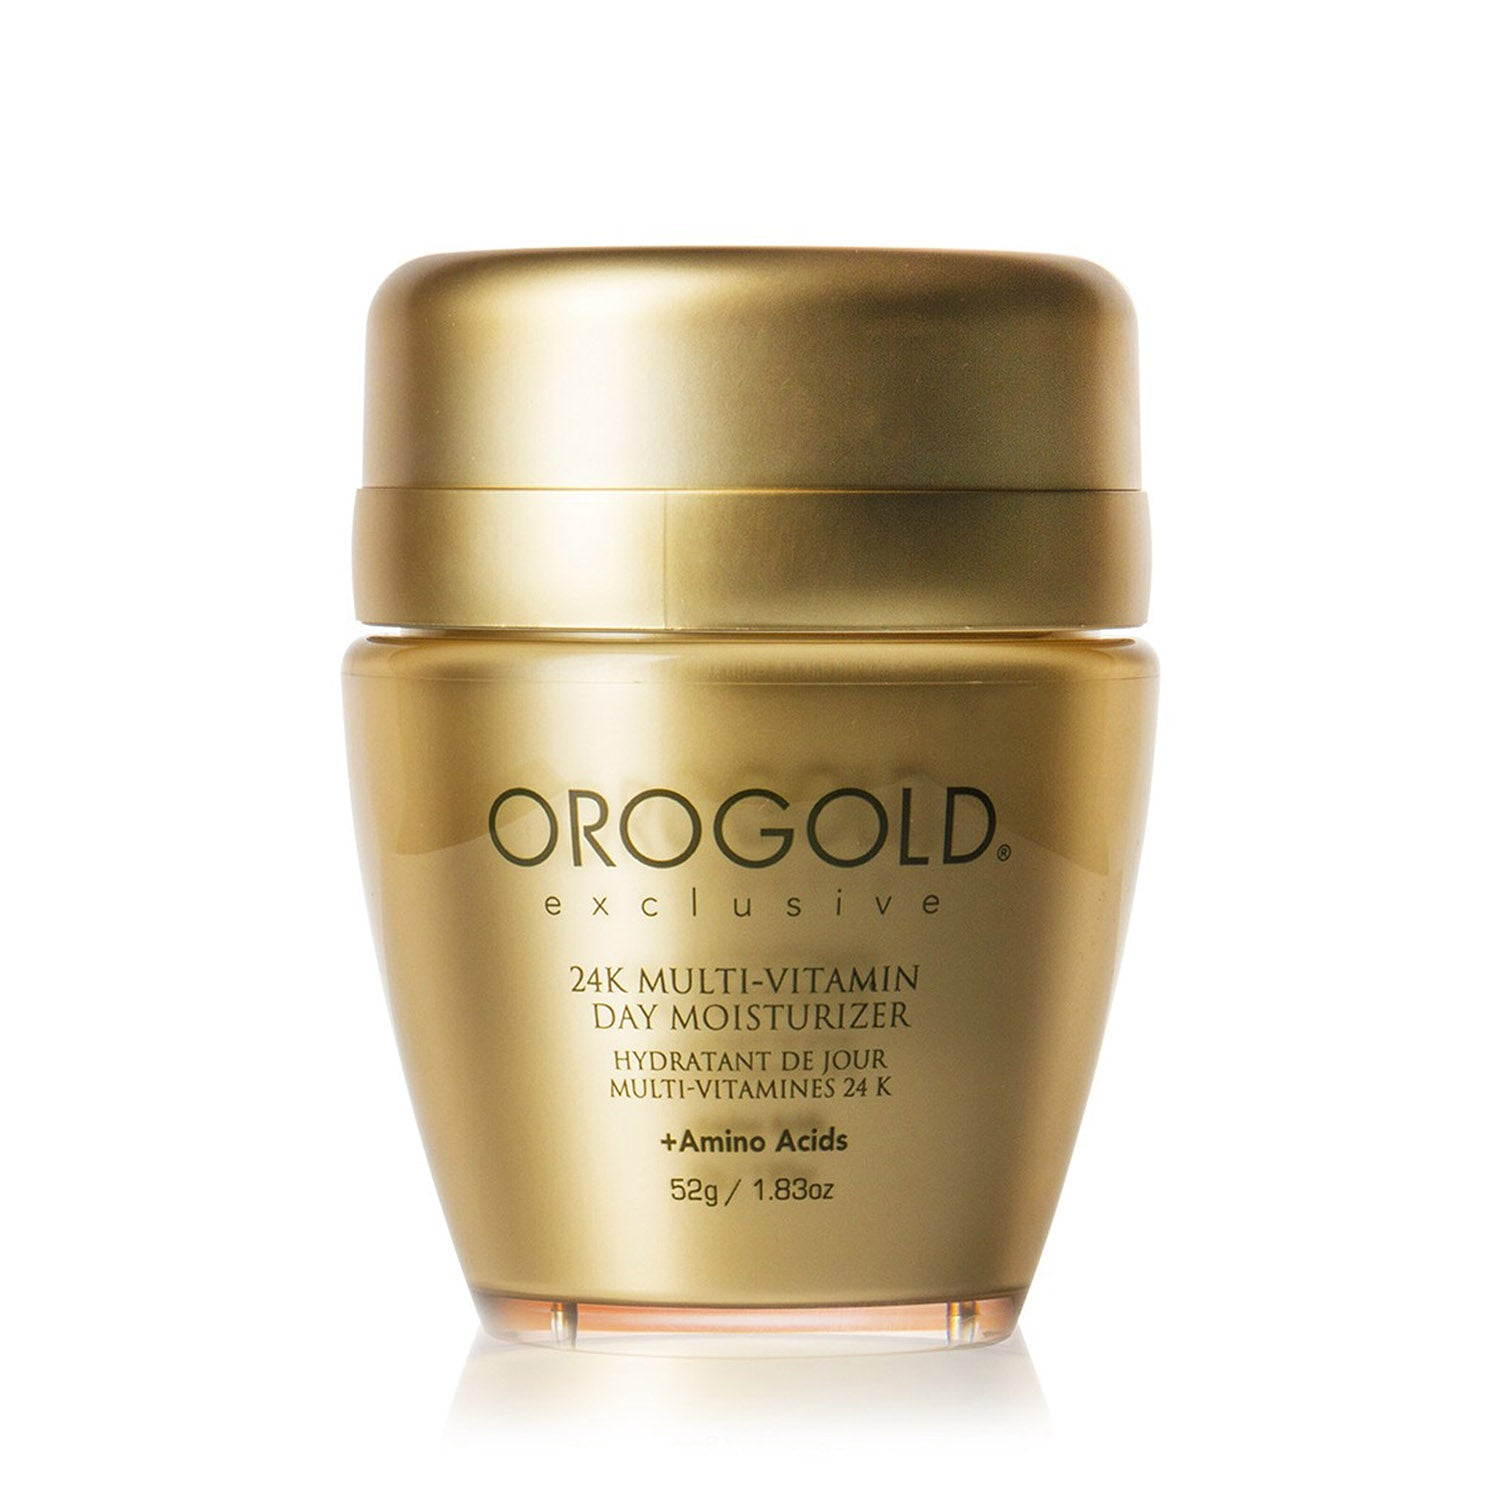 orogold day moisturizer for anti aging